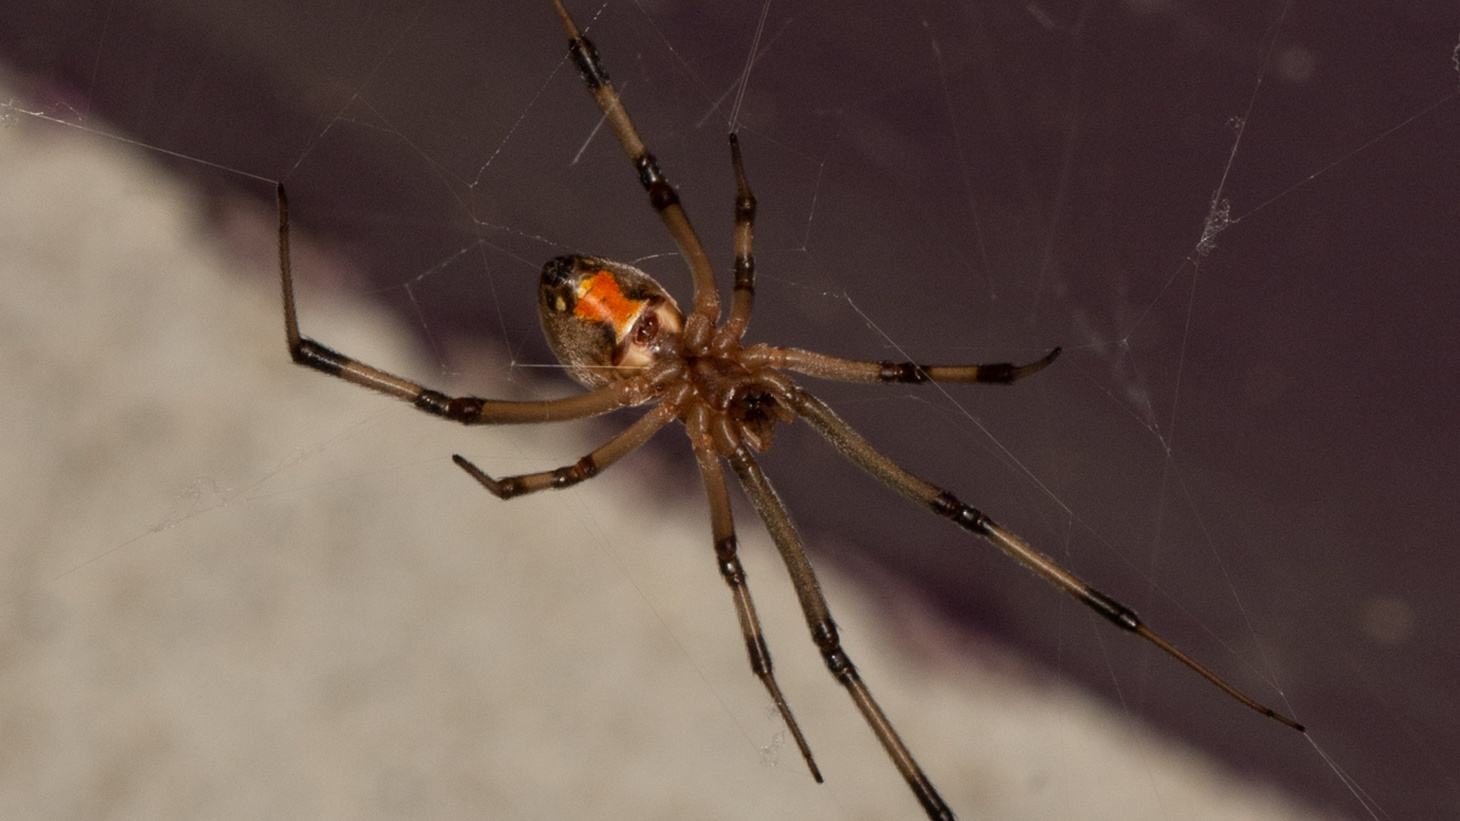 The non-native brown widow is rapidly spreading throughout coastal Southern California.